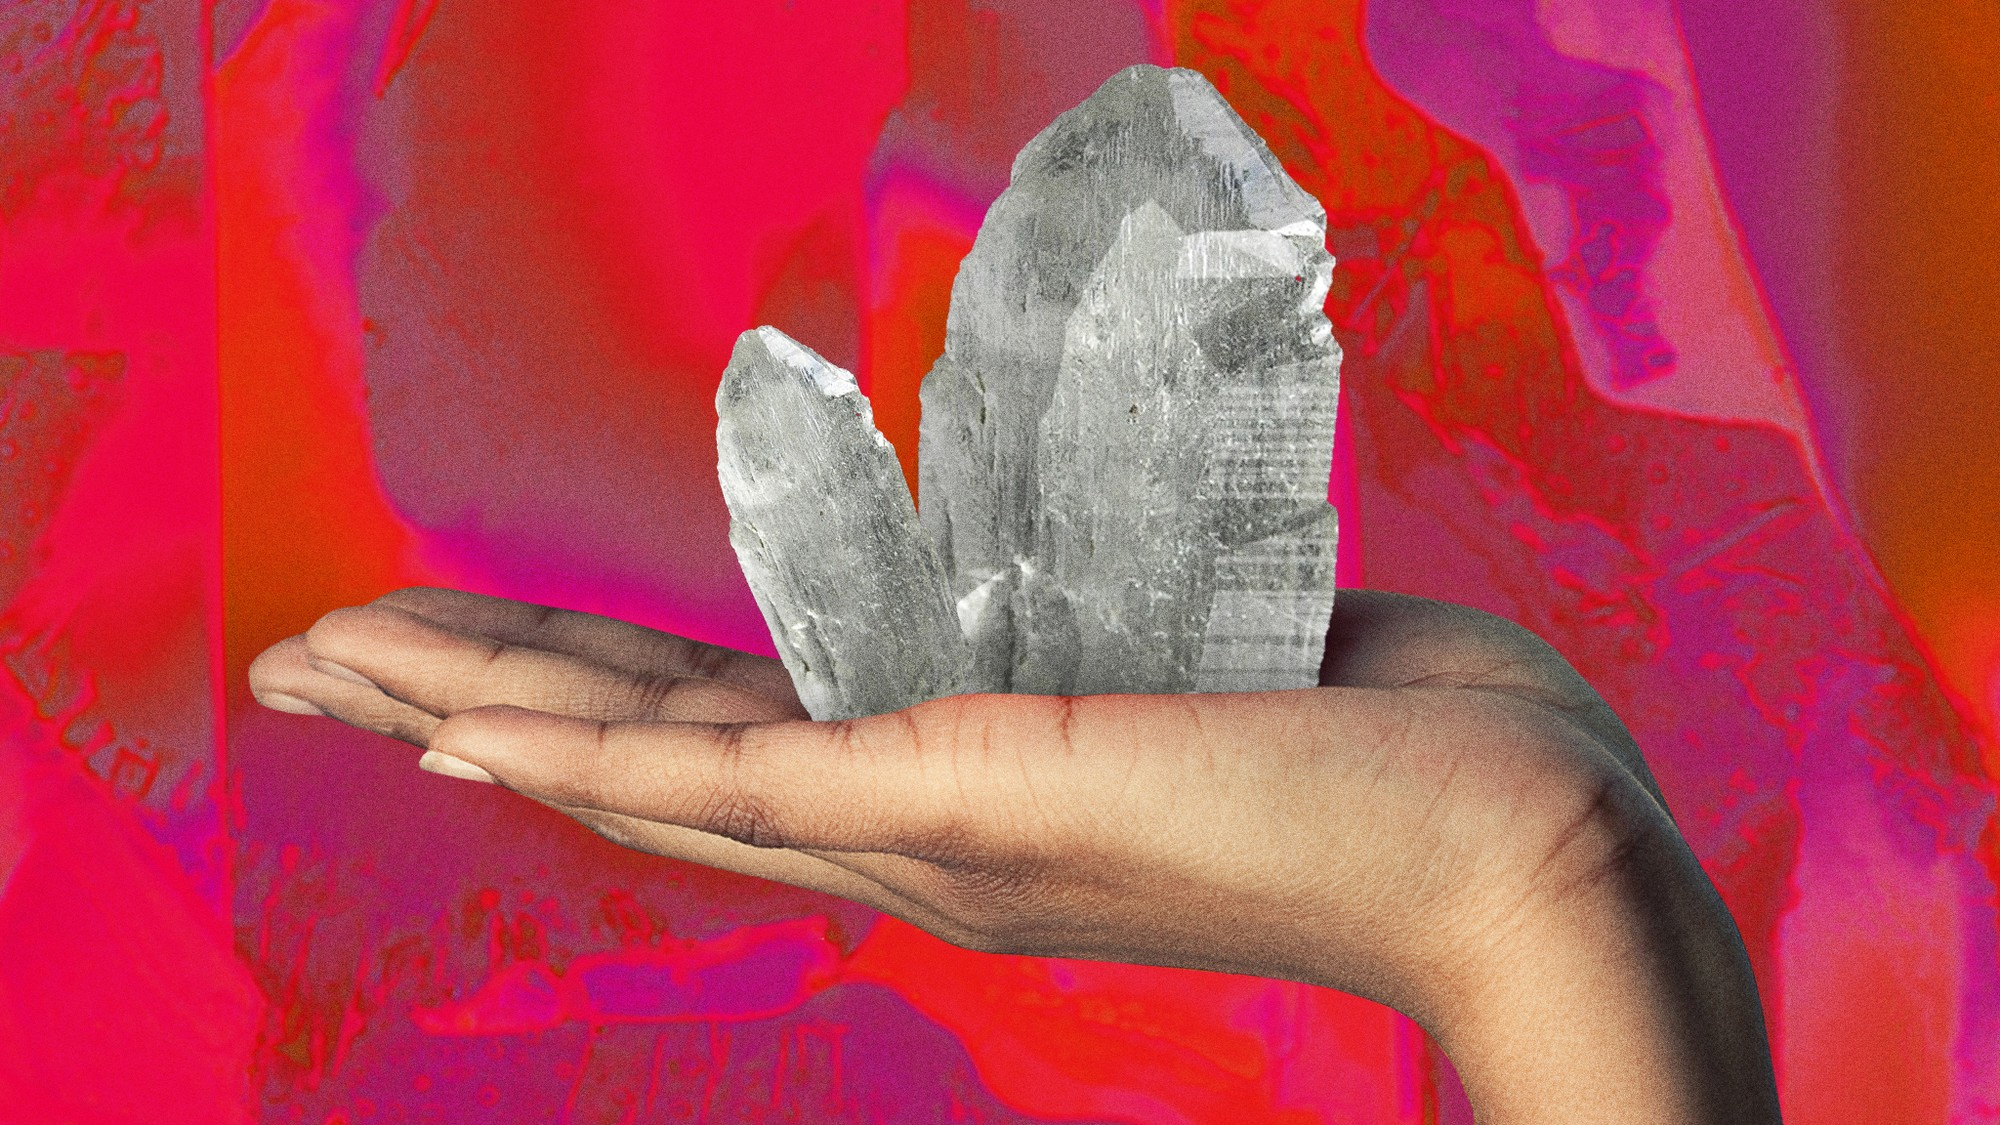 What Happened When I Tried To Use Crystals To Improve My